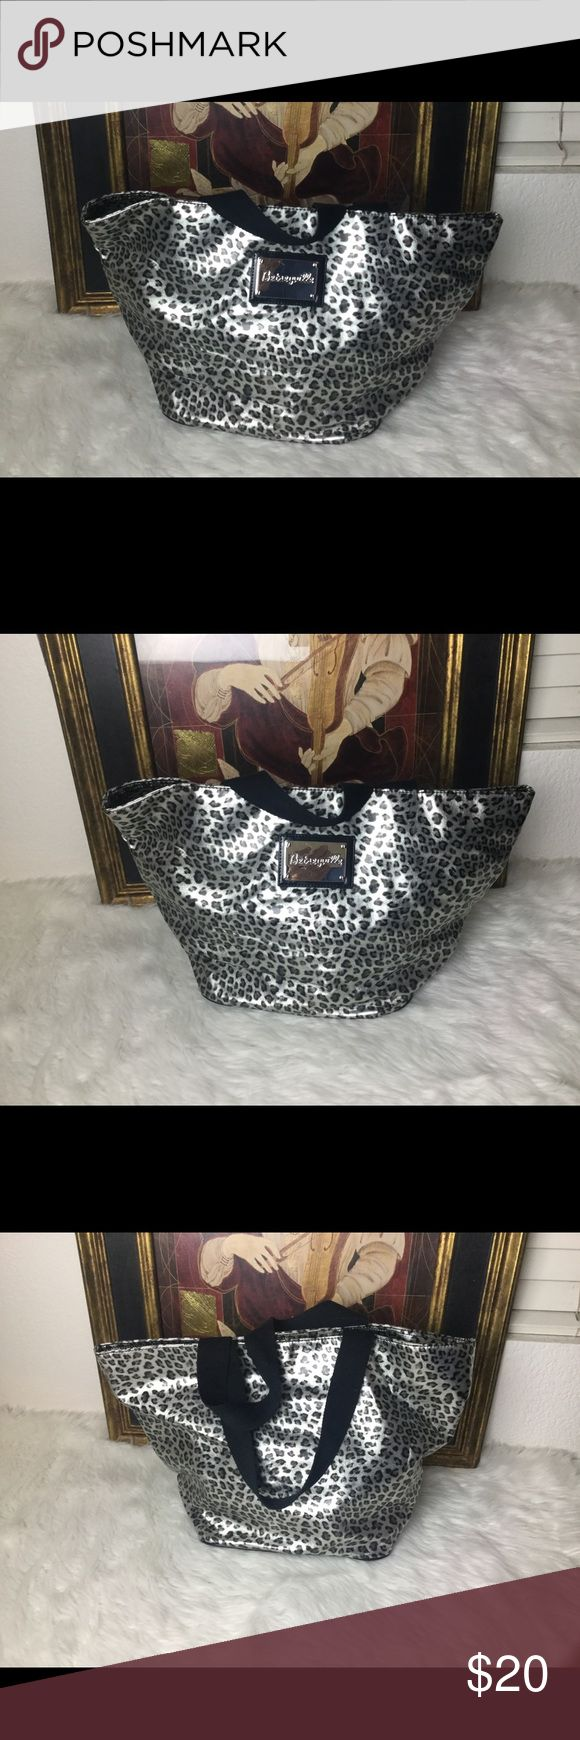 Betseyville Animal Print Tote Bag Betseyville Animal Print Tote Bag. Measures 18x11. In good shape. Betsey Johnson Bags Totes